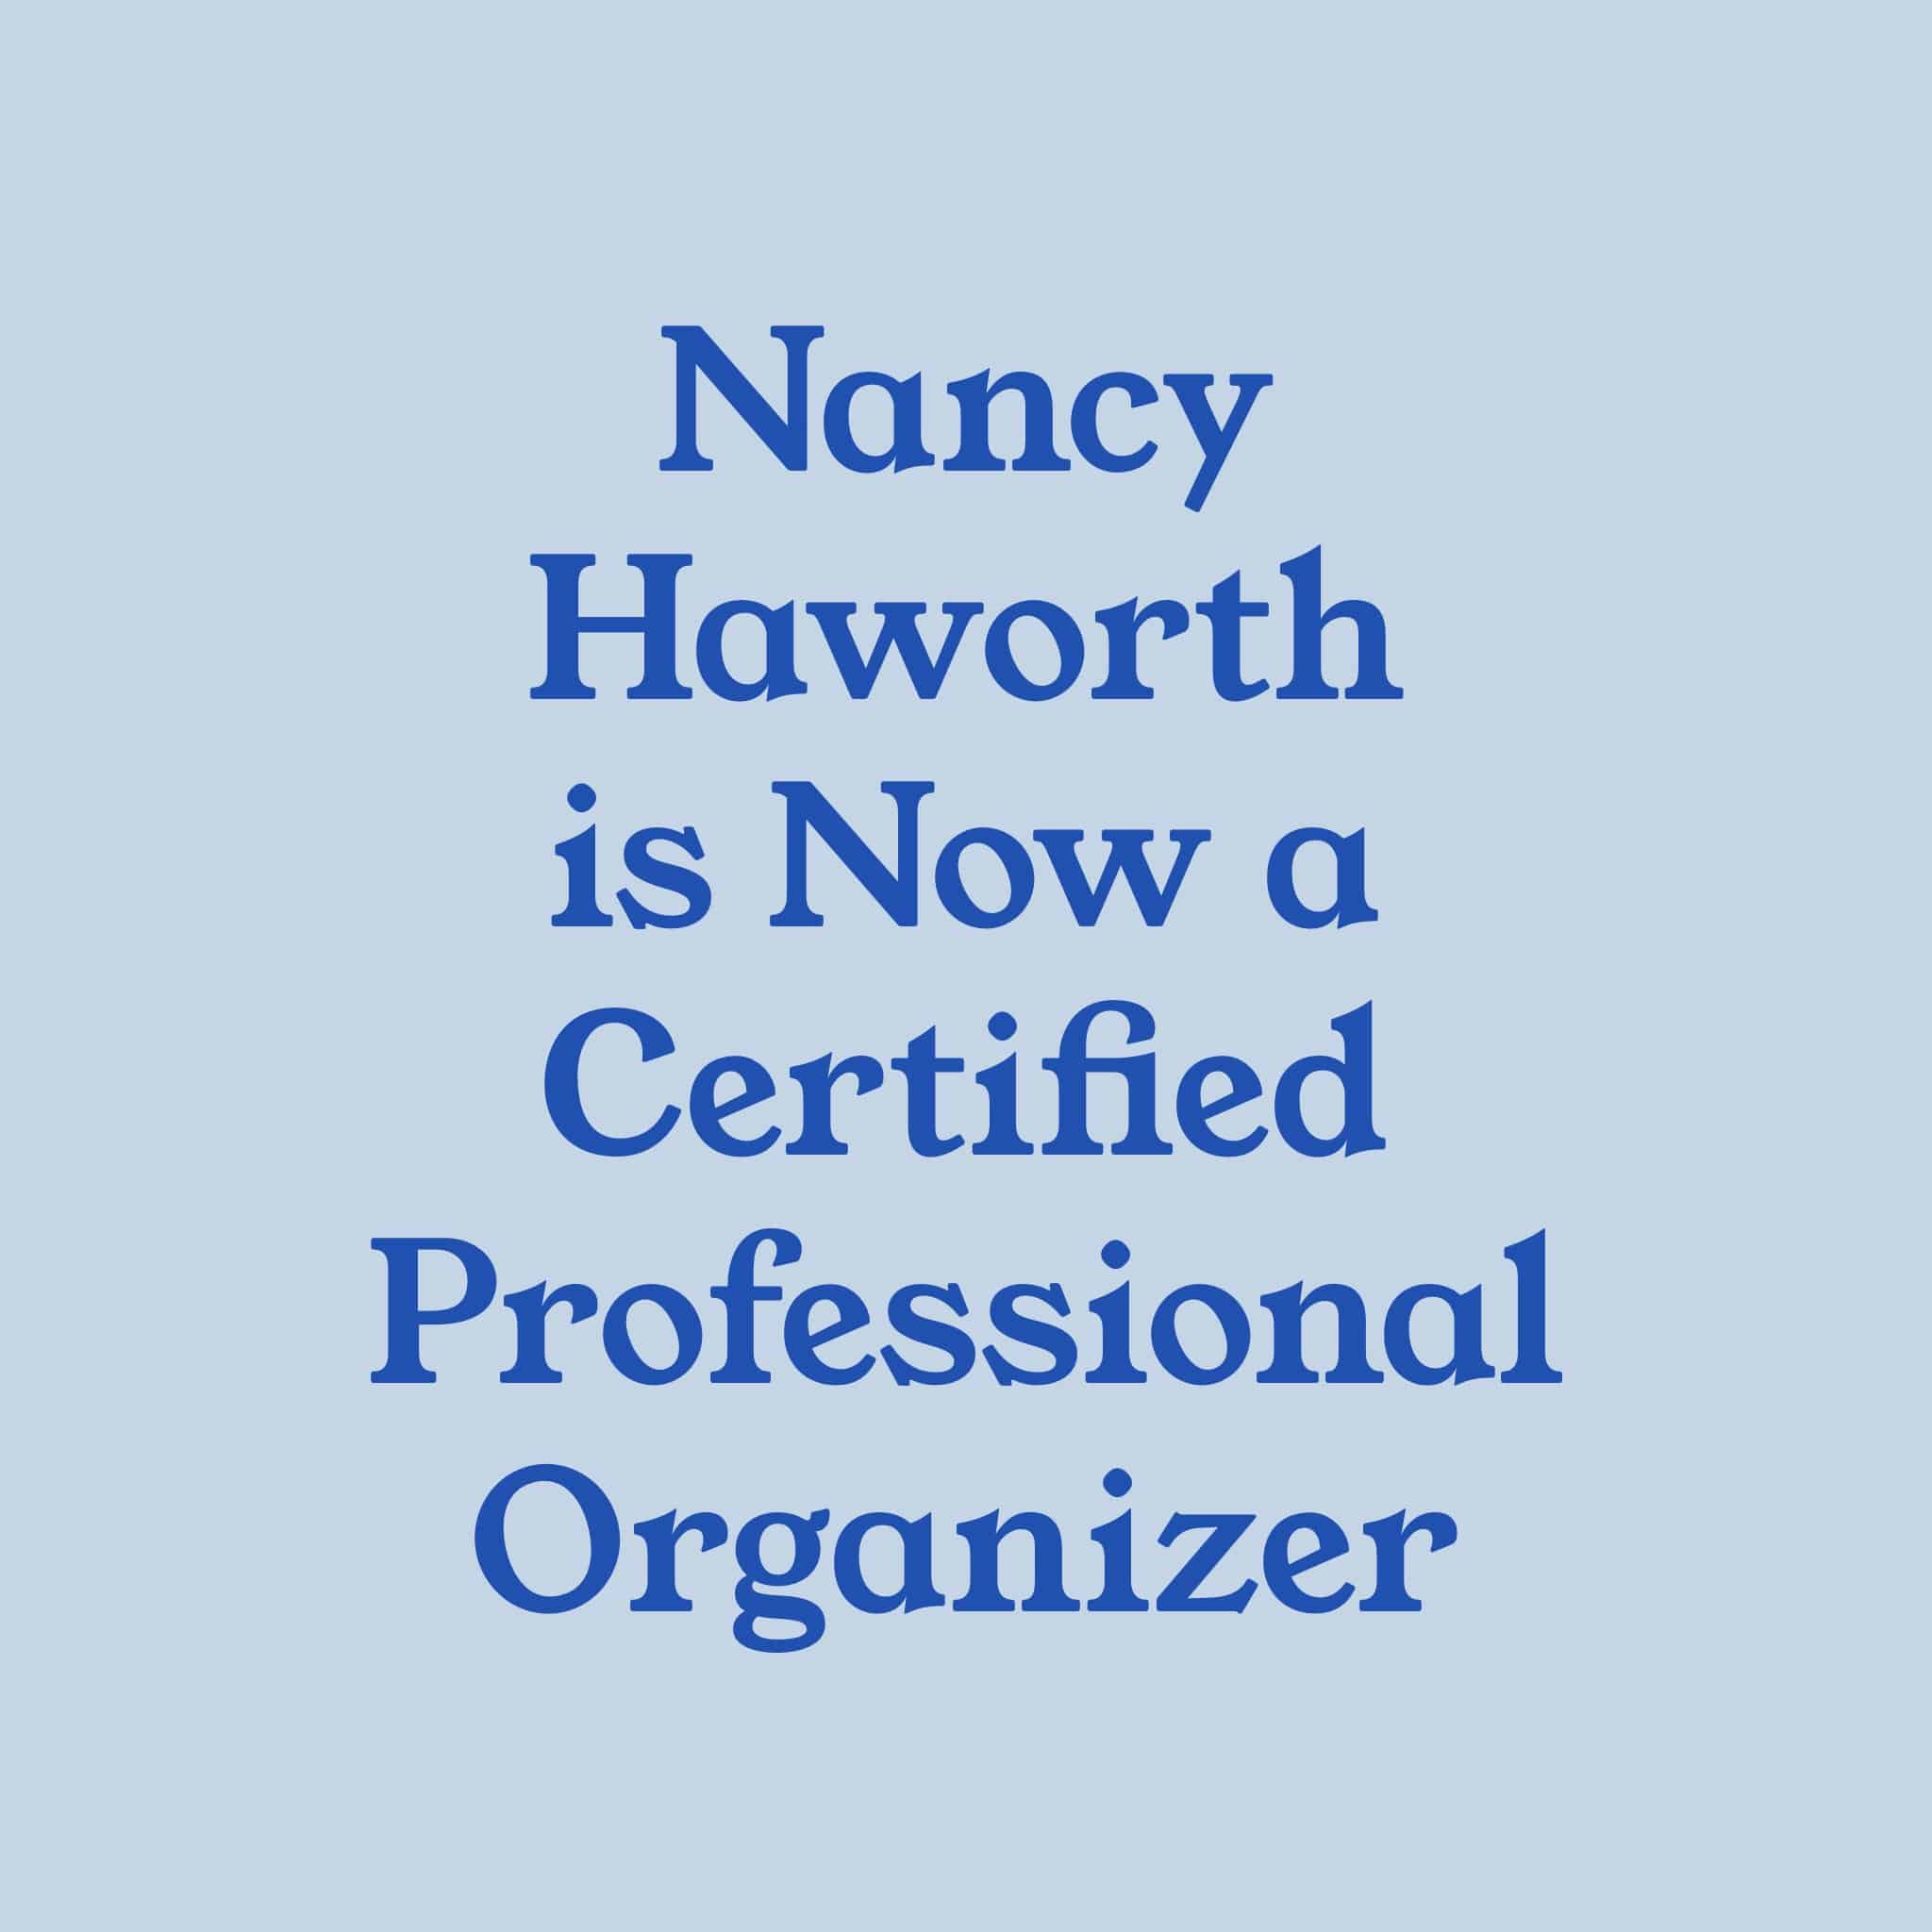 Nancy Haworth is Now a Certified Professional Organizer